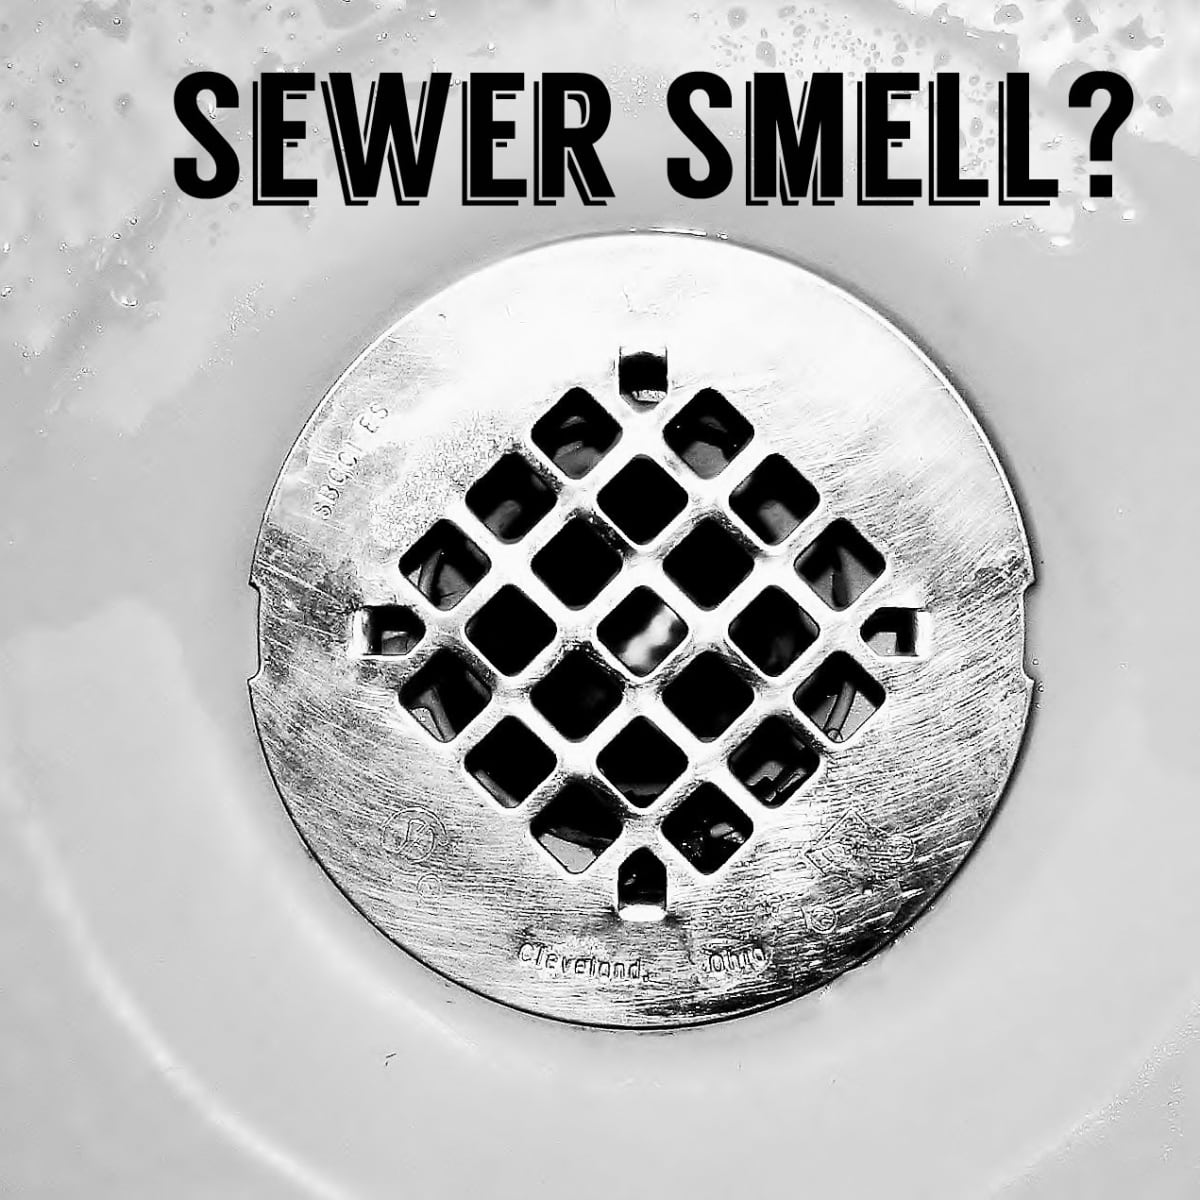 Smell Sewer Gas In Your House Try This, Sewer Smell In Bathroom